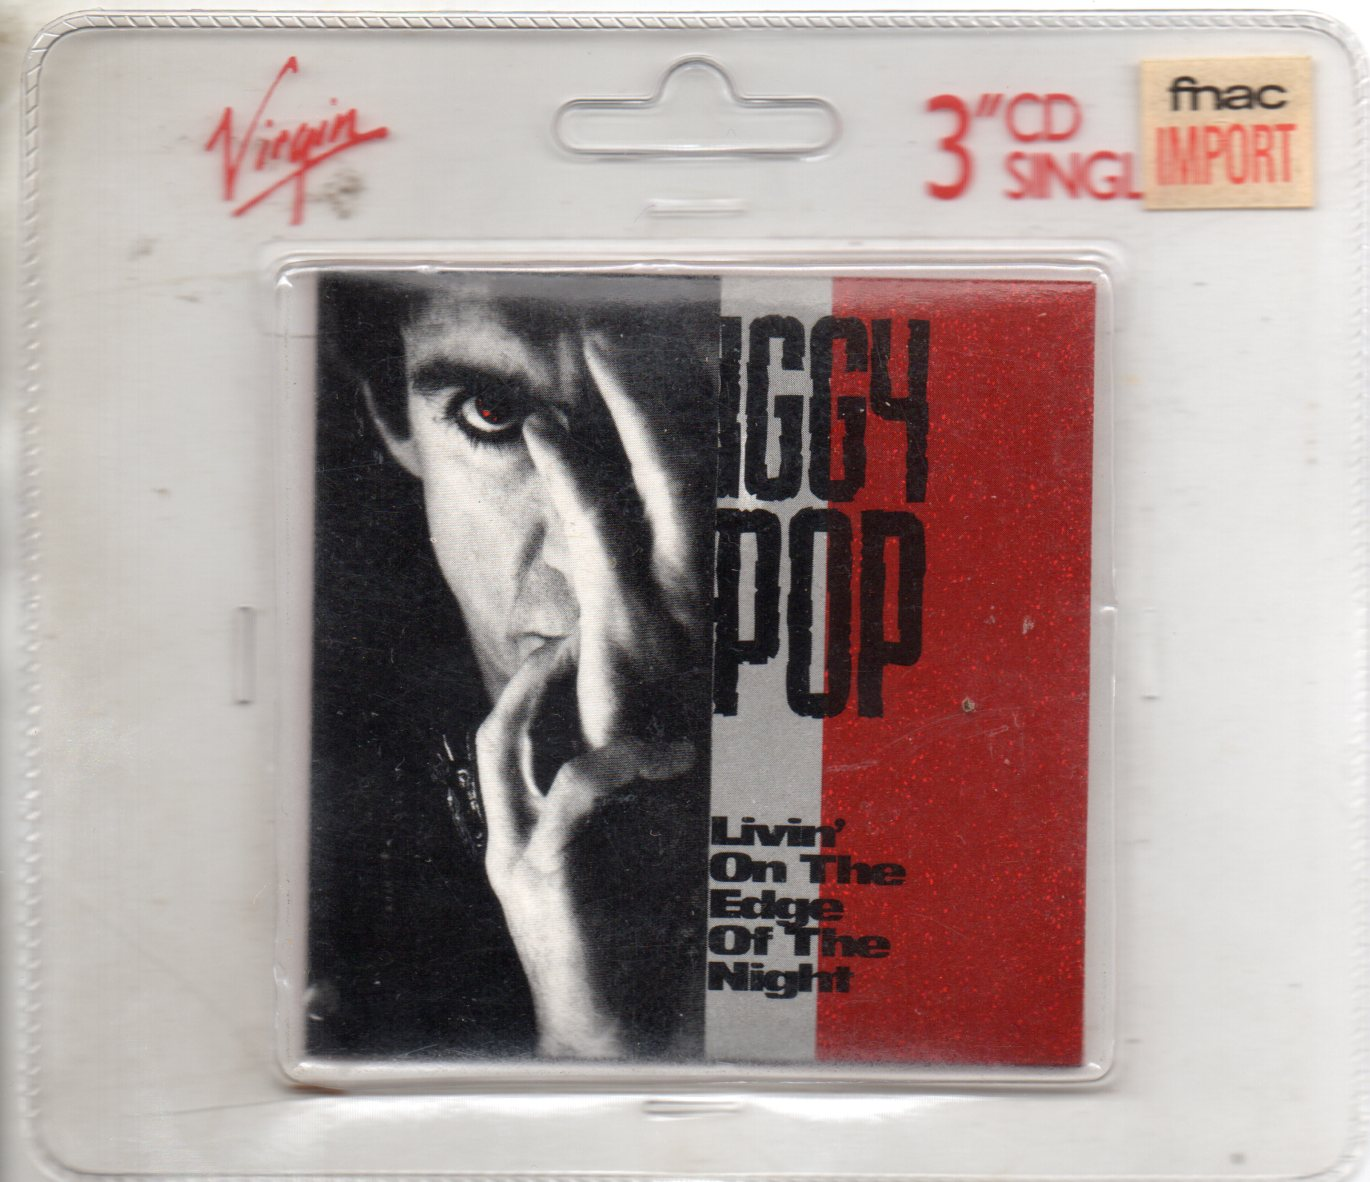 Livin' On The Edge Of The Night - U.s. Promo Issue - Edit 3:08/3:38 - POP, IGGY